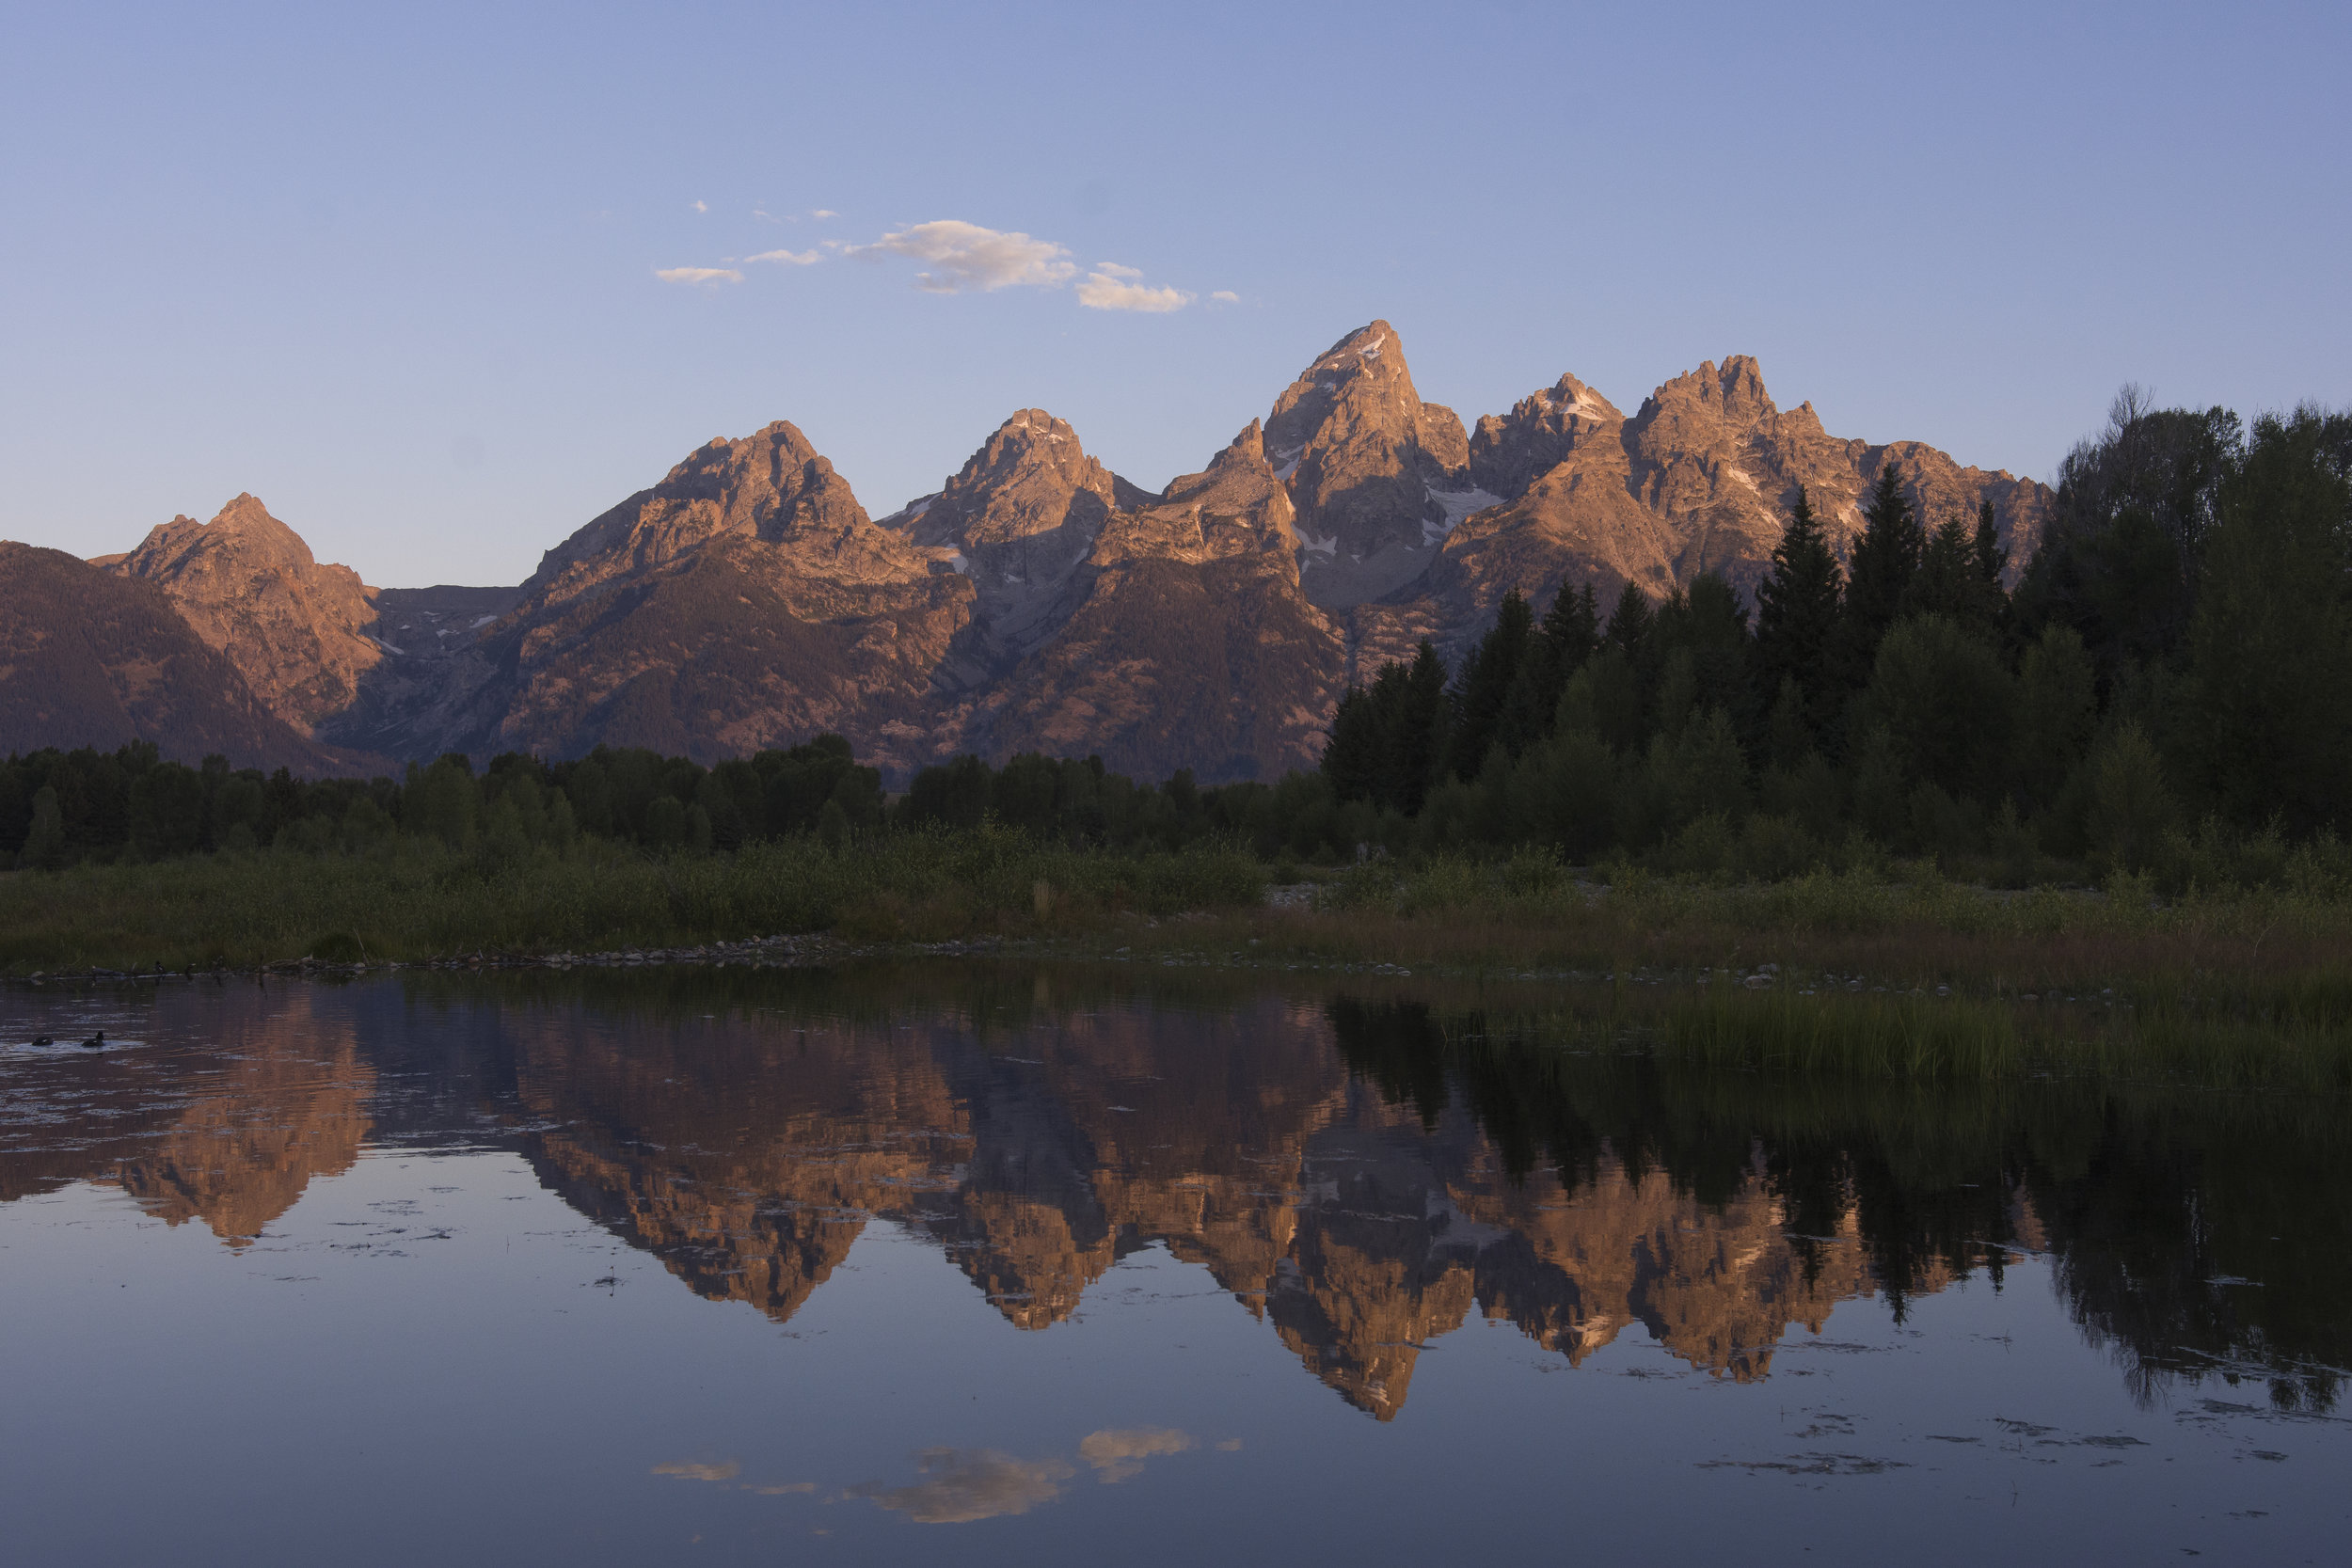 This viewpoint of the Tetons does not require pitching your tent on a cliff. (Grand Teton National Park, WY.)